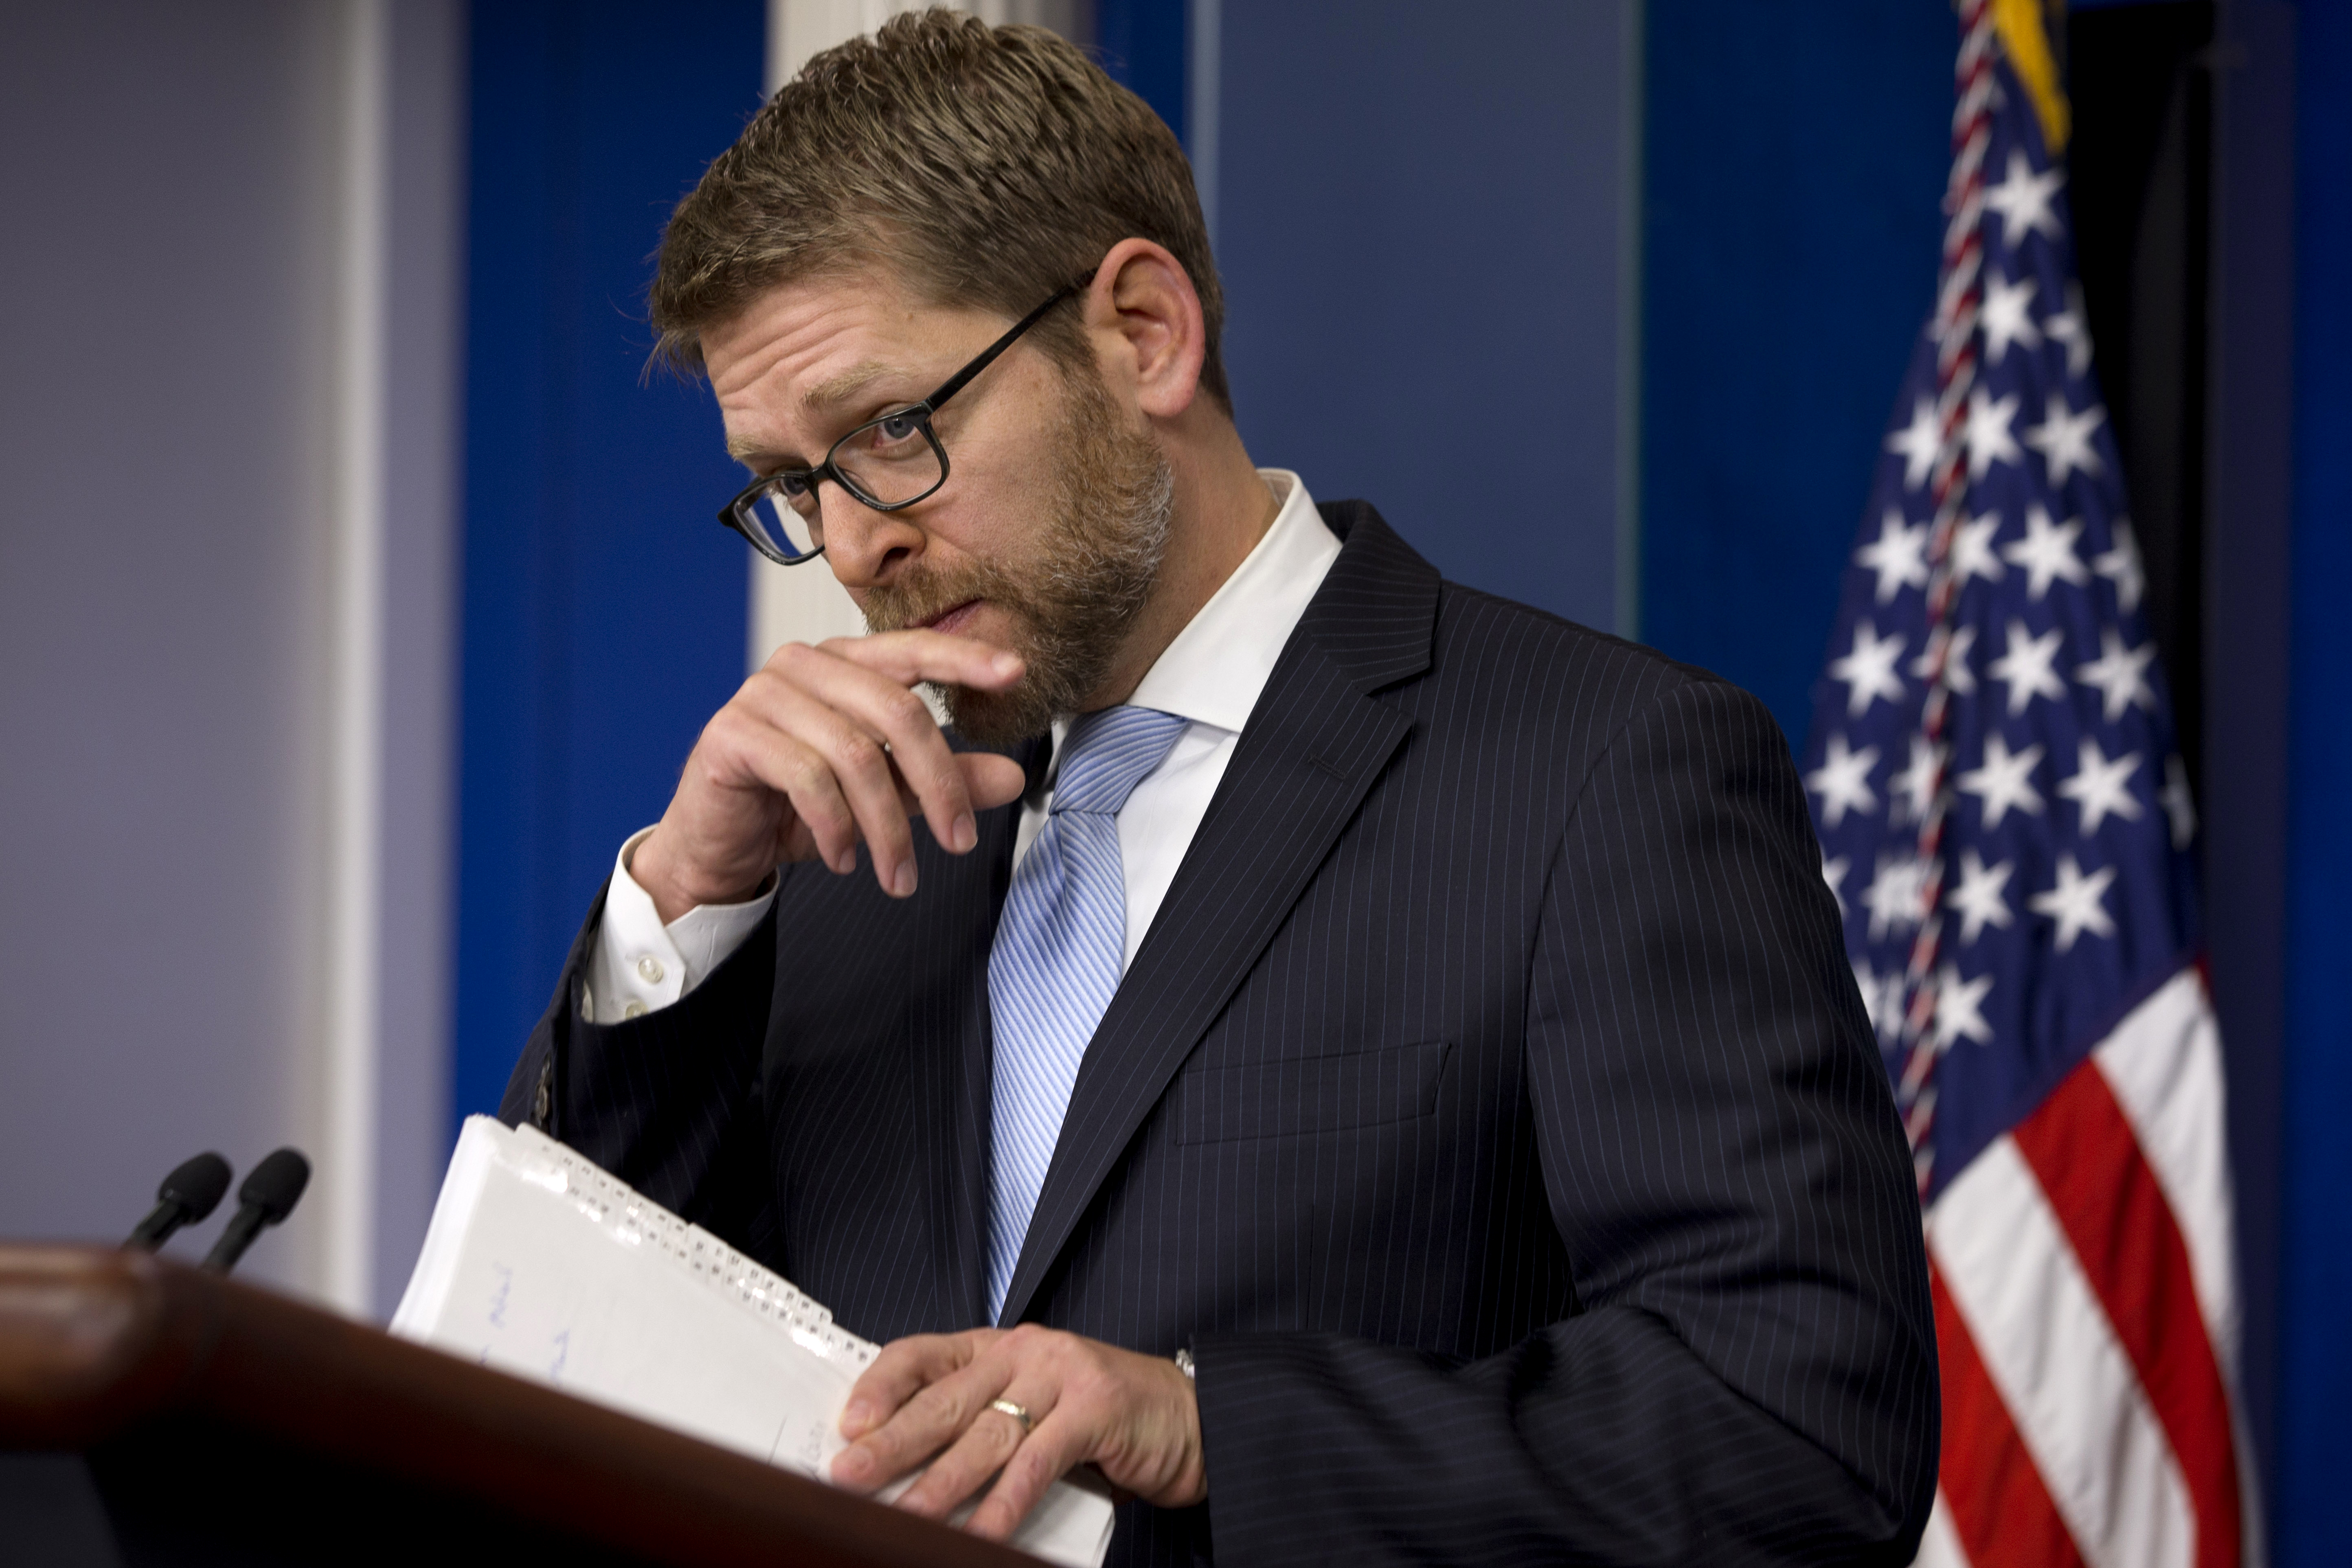 White House press secretary Jay Carney listens to a question about Israel and Secretary of State John Kerry during his daily news briefing at the White House in Washington on Jan. 14, 2014.